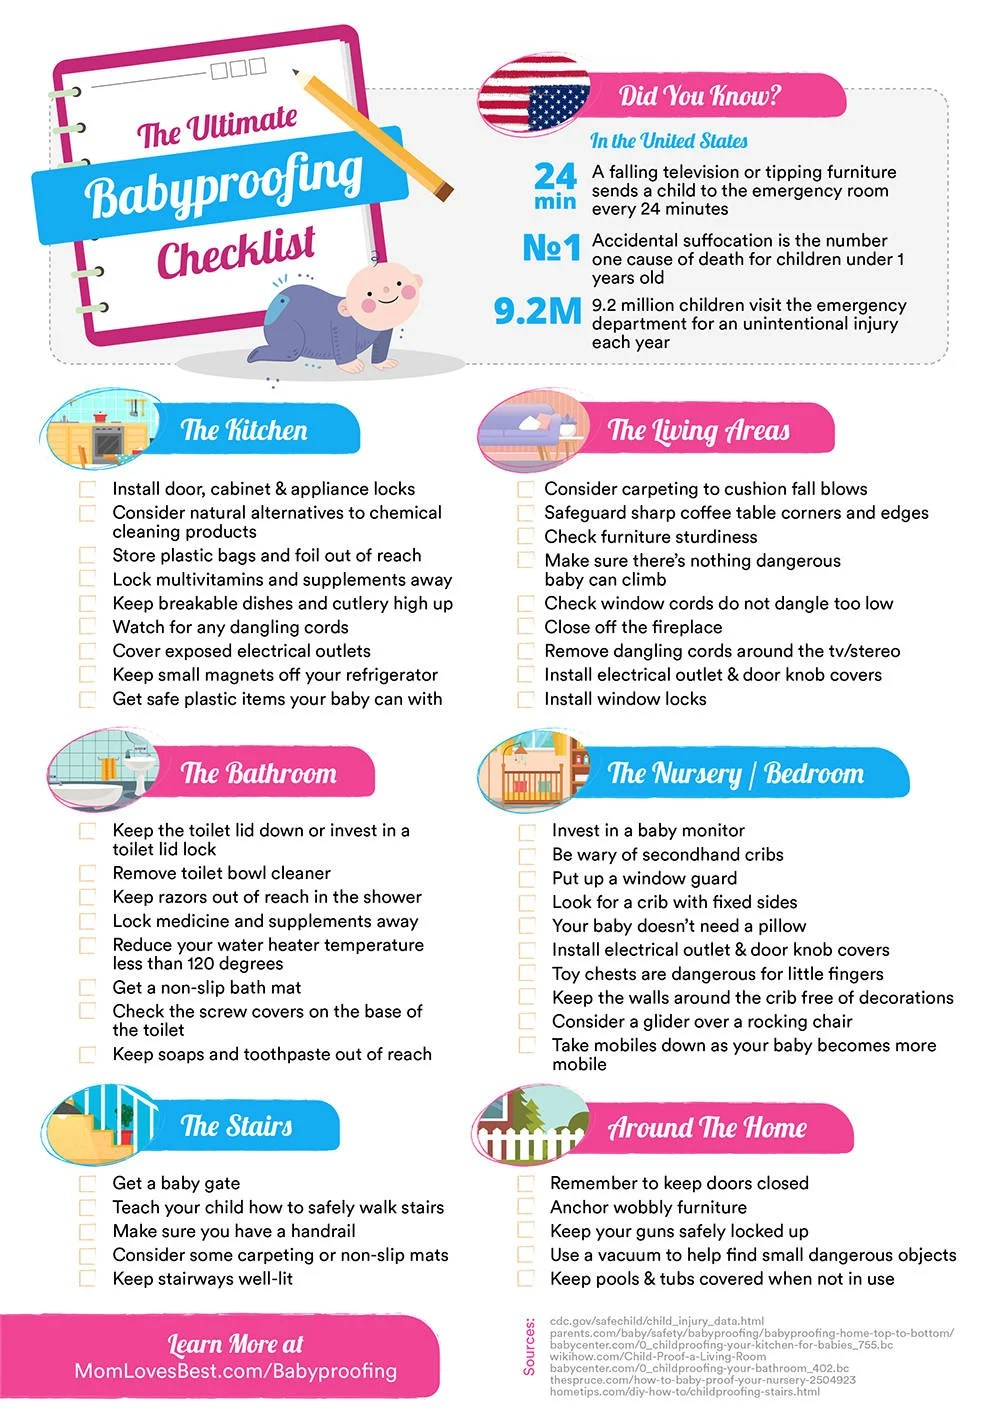 Fireplace Safety Screen Child Guard The Ultimate Checklist To Babyproofing Your Home Free Pdf